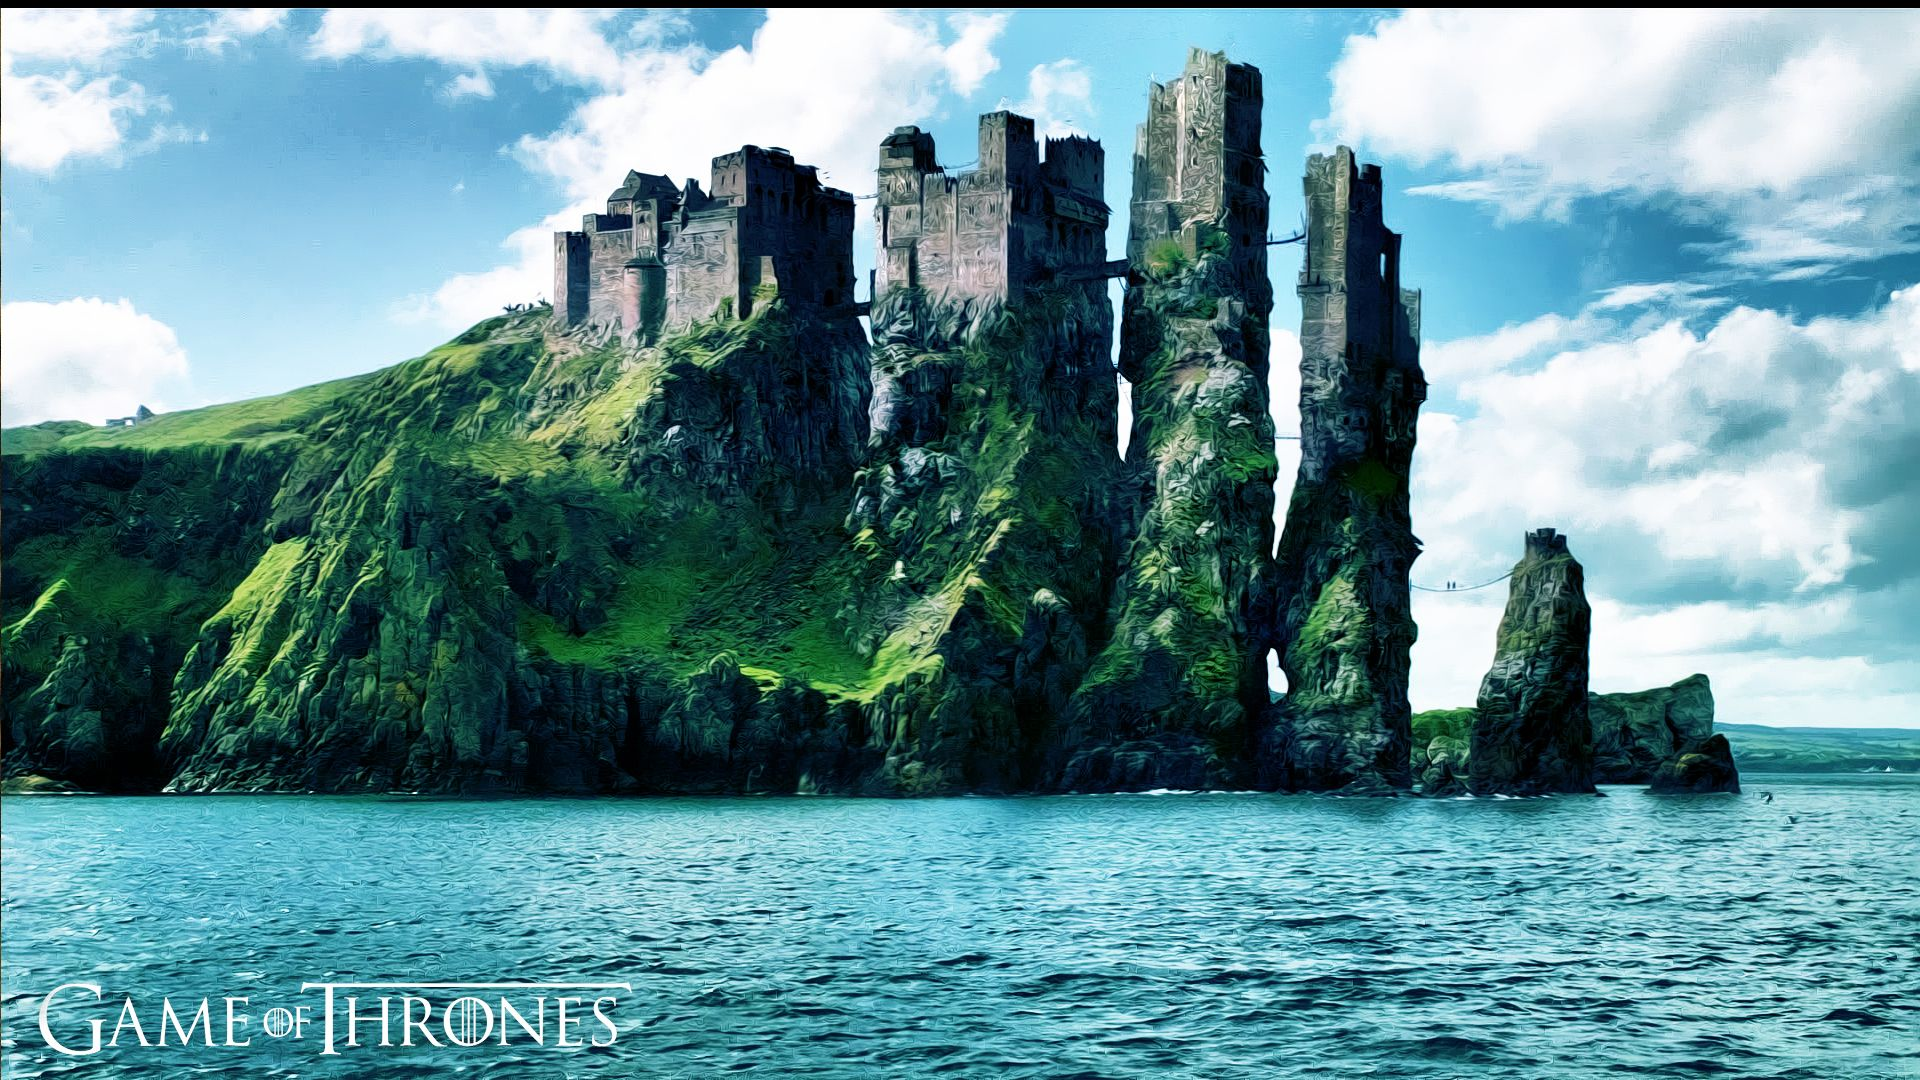 Pyke Game Of Thrones Game Of Thrones Castles Game Of Thrones Theme Hd Wallpaper